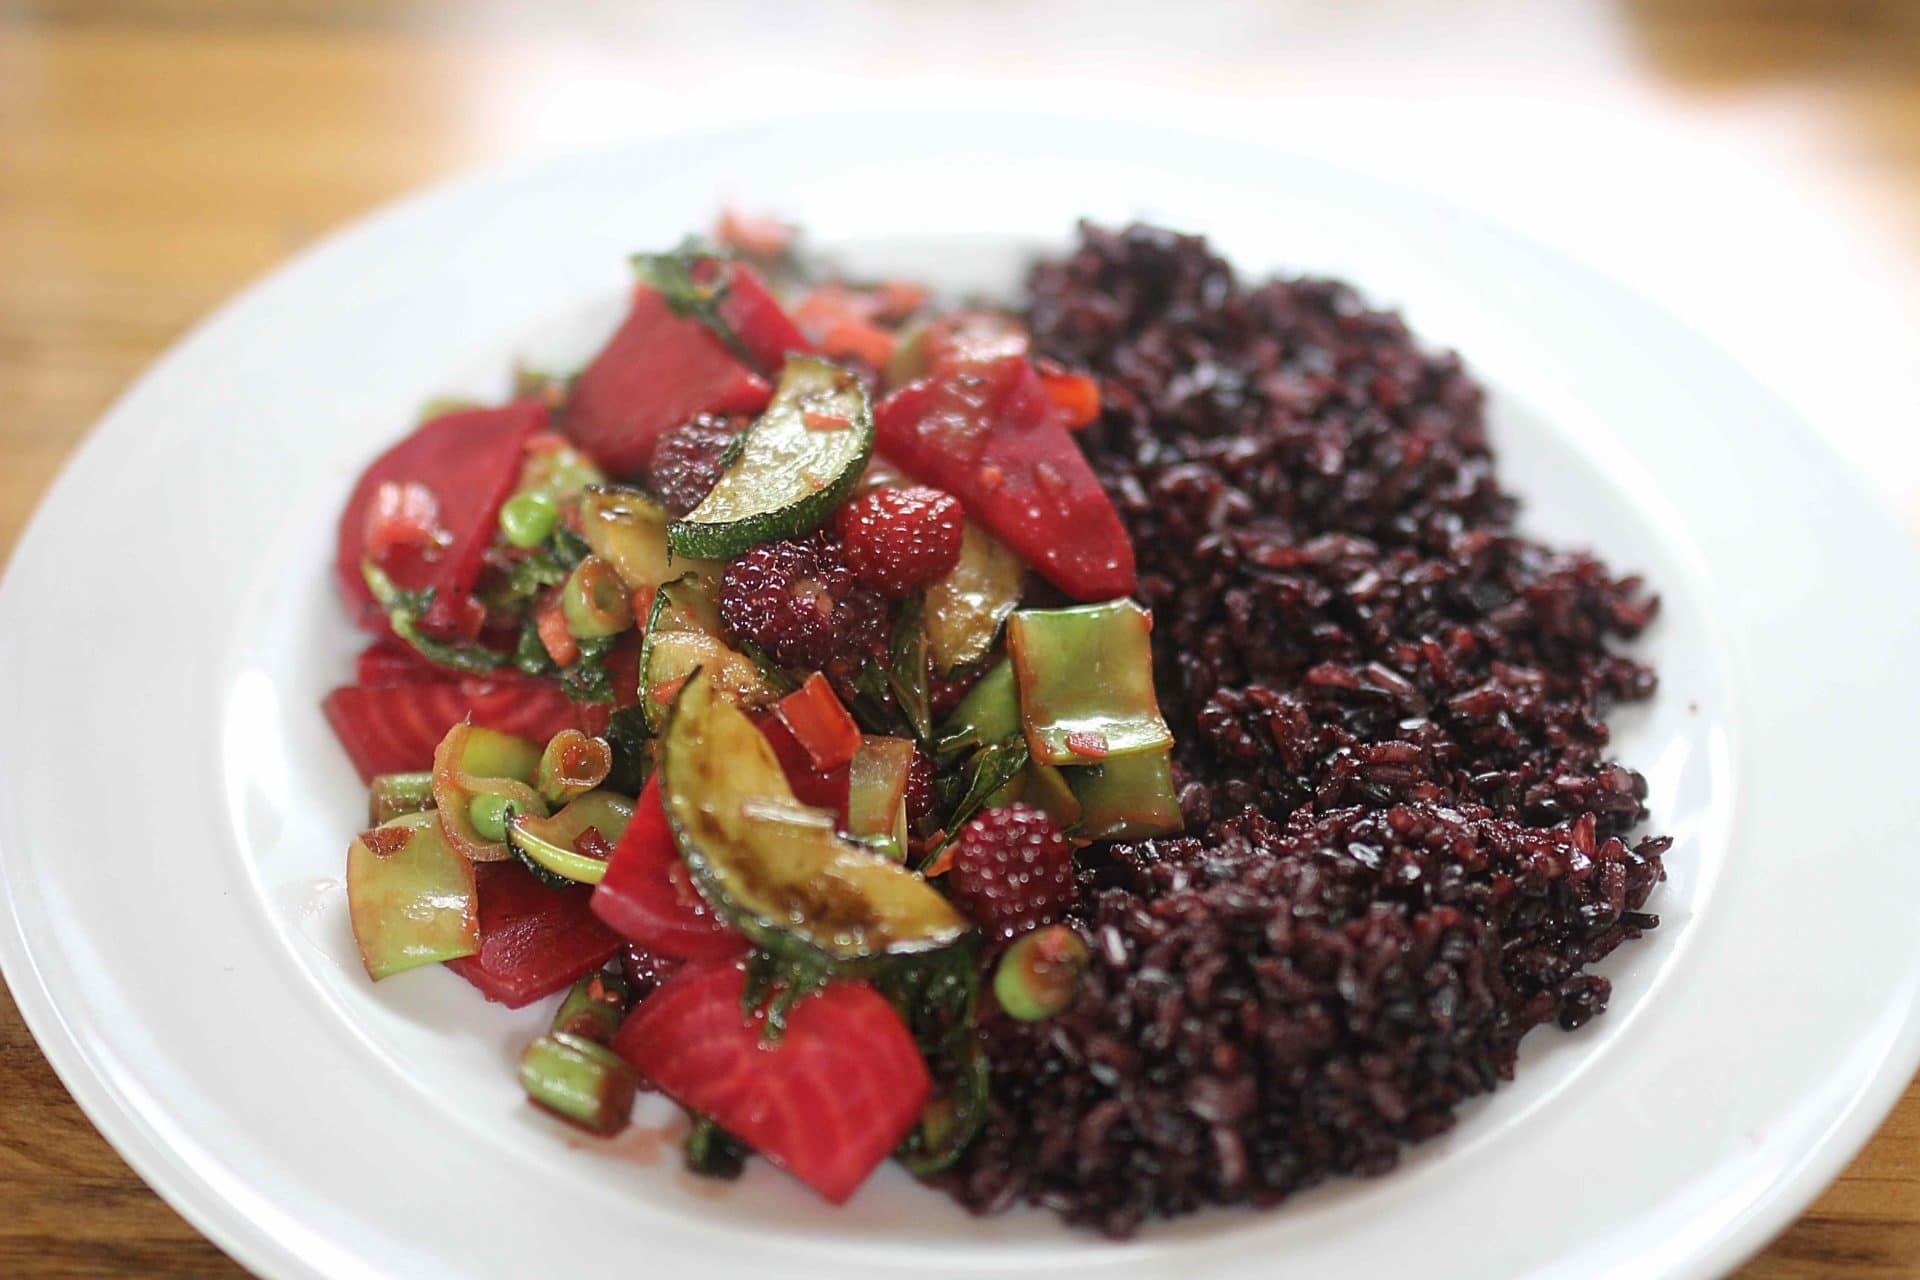 Blackberry & Beetroot Stir Fry Recipe